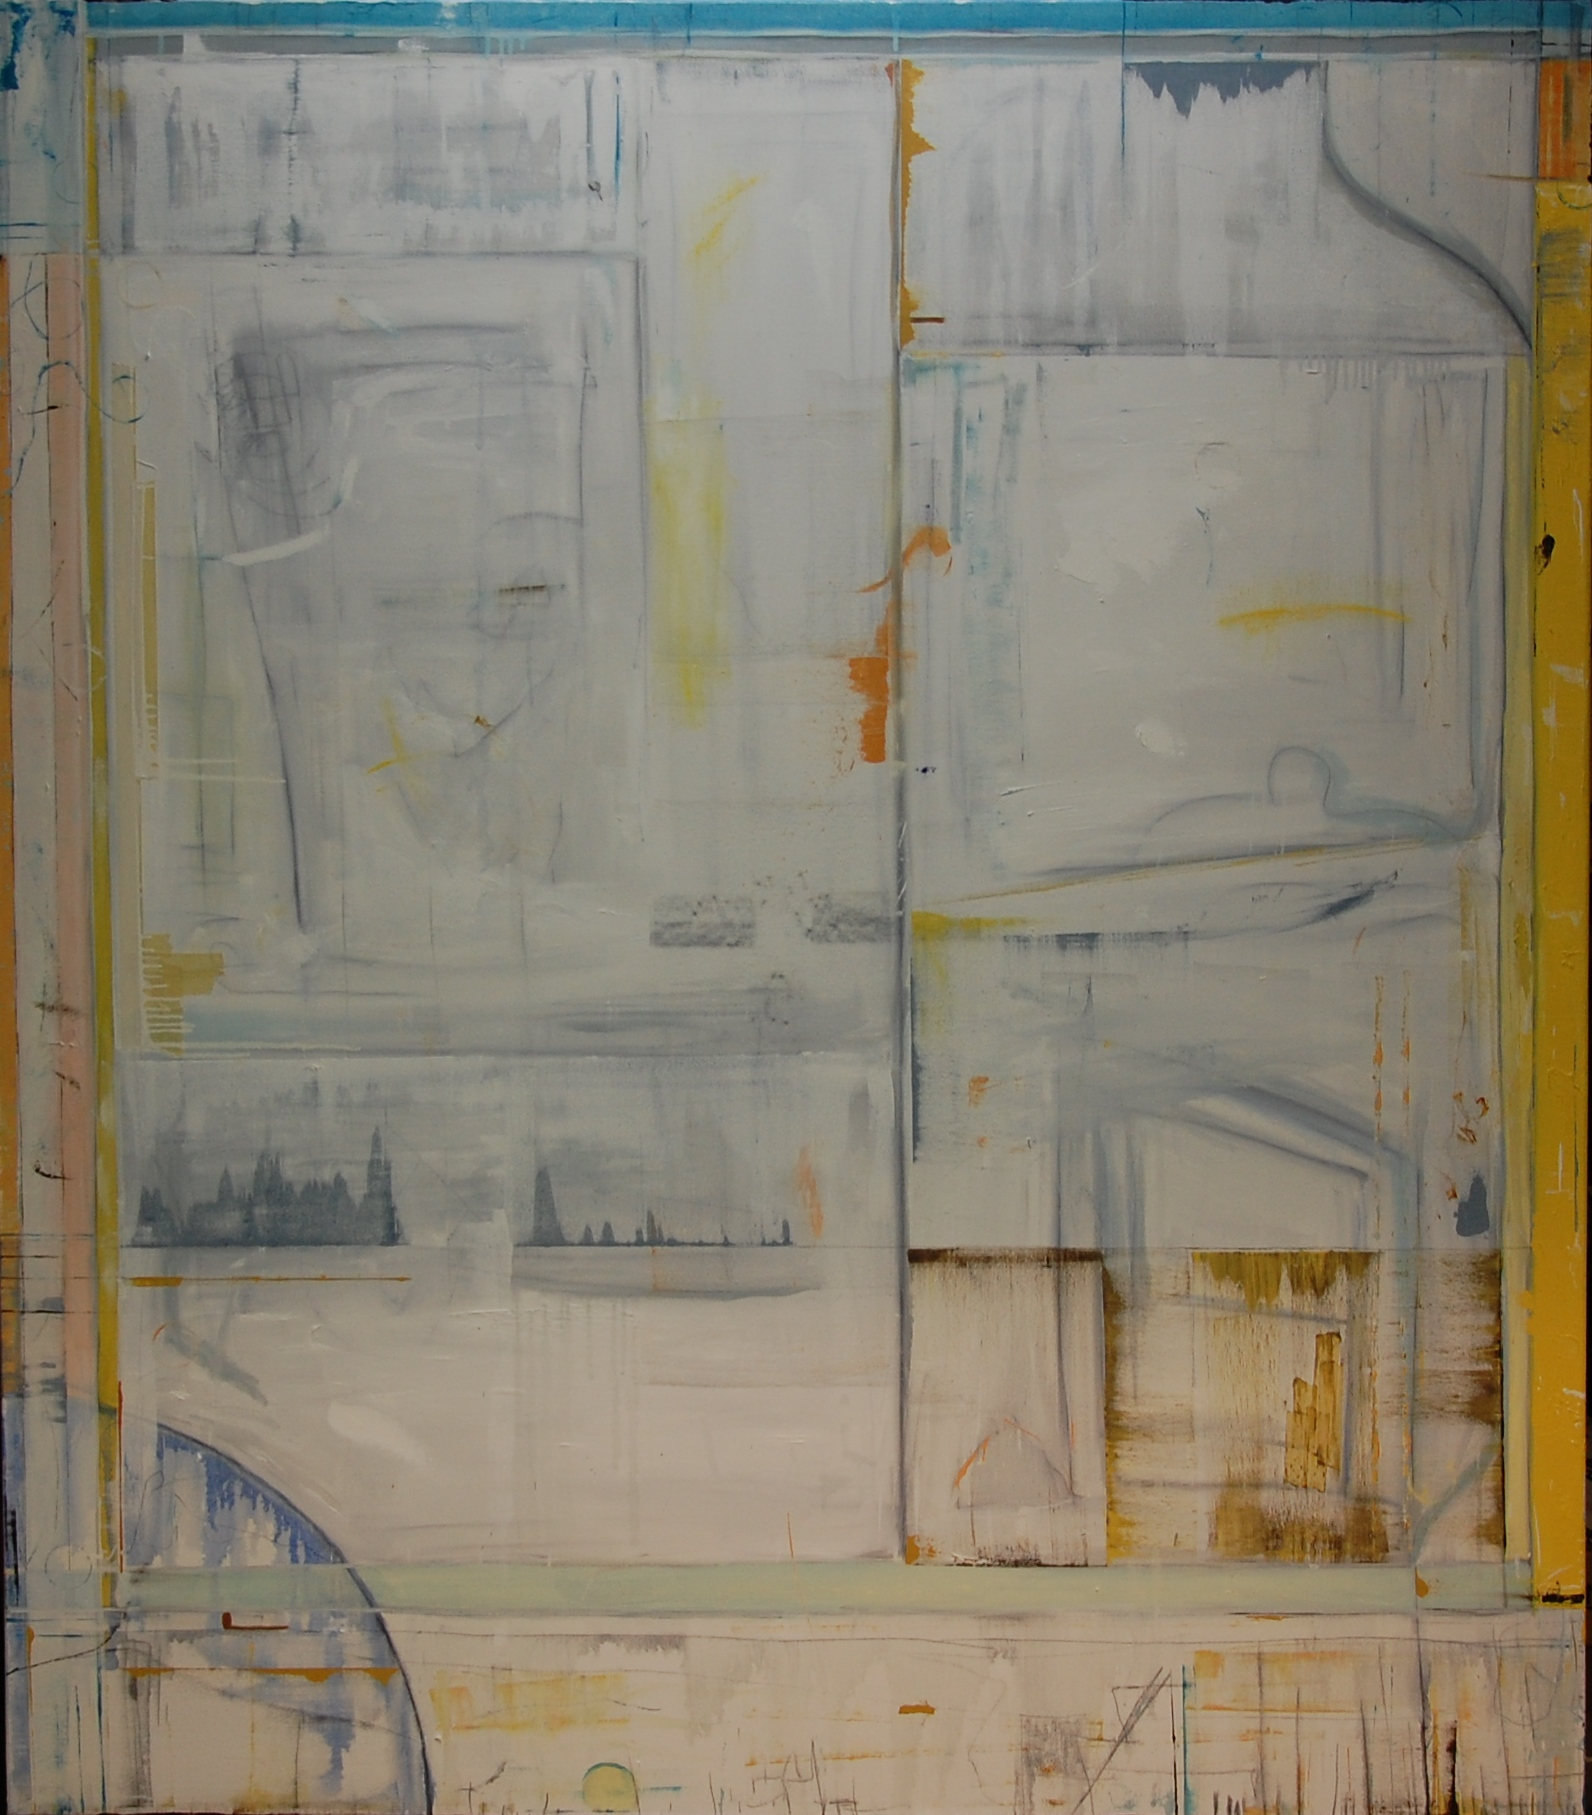 "Stephen Reichert, Untitled, 2014, oil on canvas, 75"" x 65"". Painting"